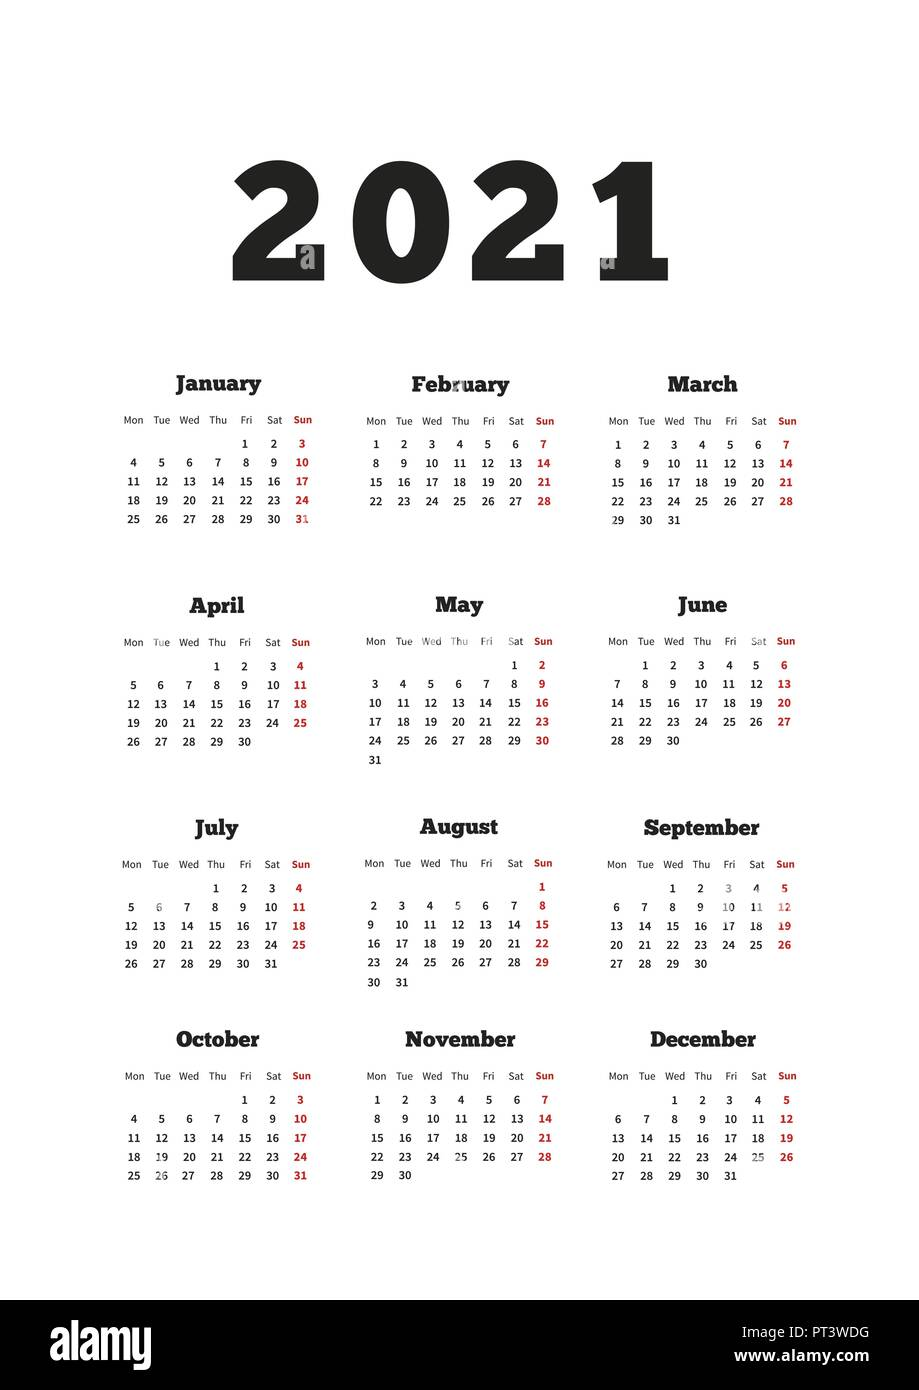 Monday To Friday Calendar 2021 Calendar on 2021 year with week starting from monday, A4 size